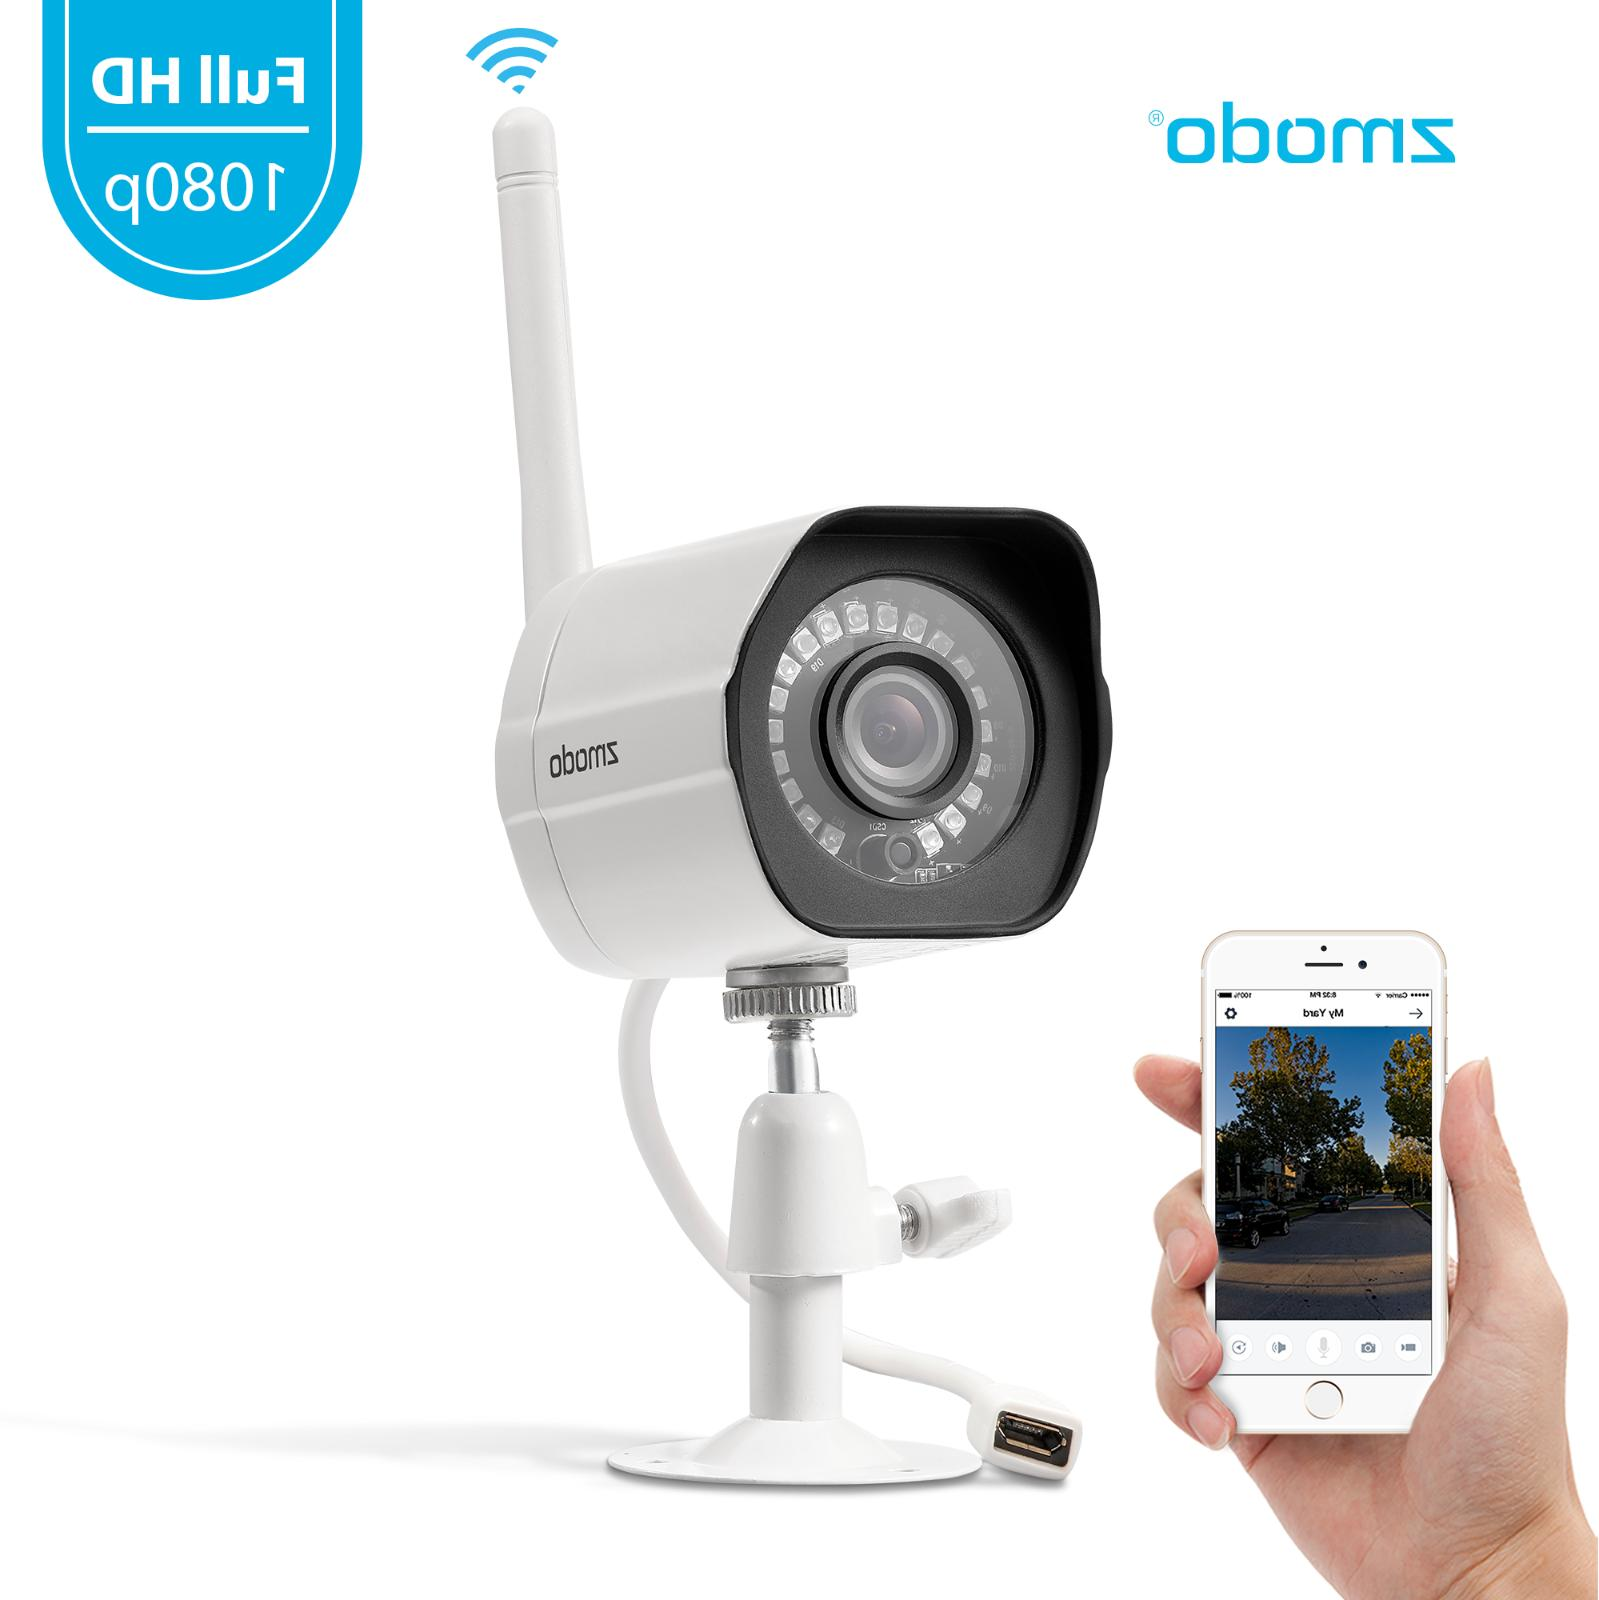 1080p wireless outdoor home security camera night